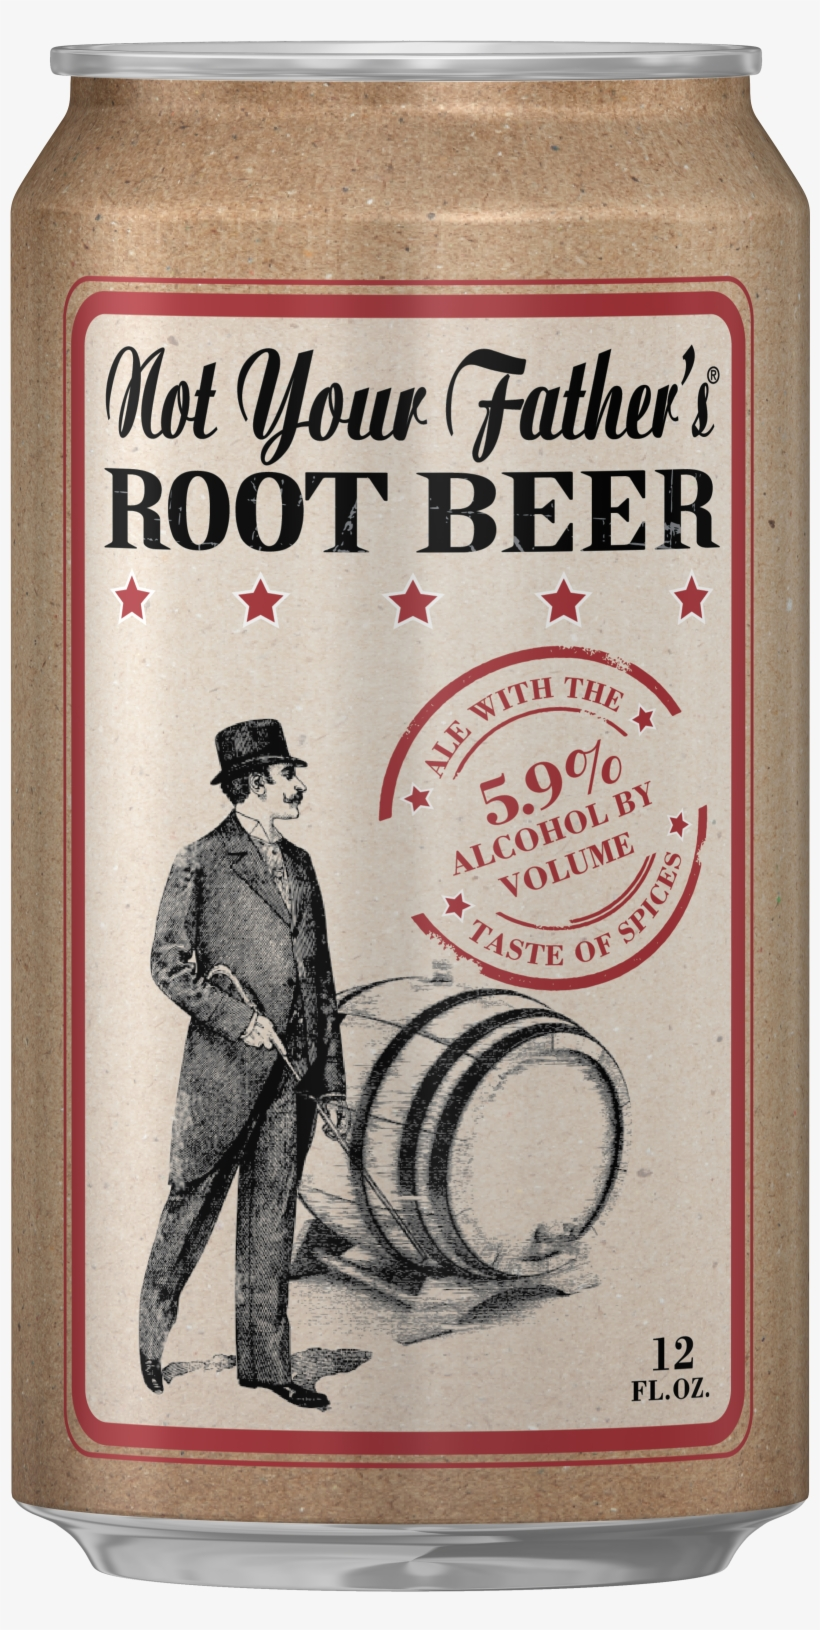 Nyfrb Pulled Pork Sandwiches - Not Your Fathers Beer, Root Beer - 16 Fl Oz, transparent png #4557348